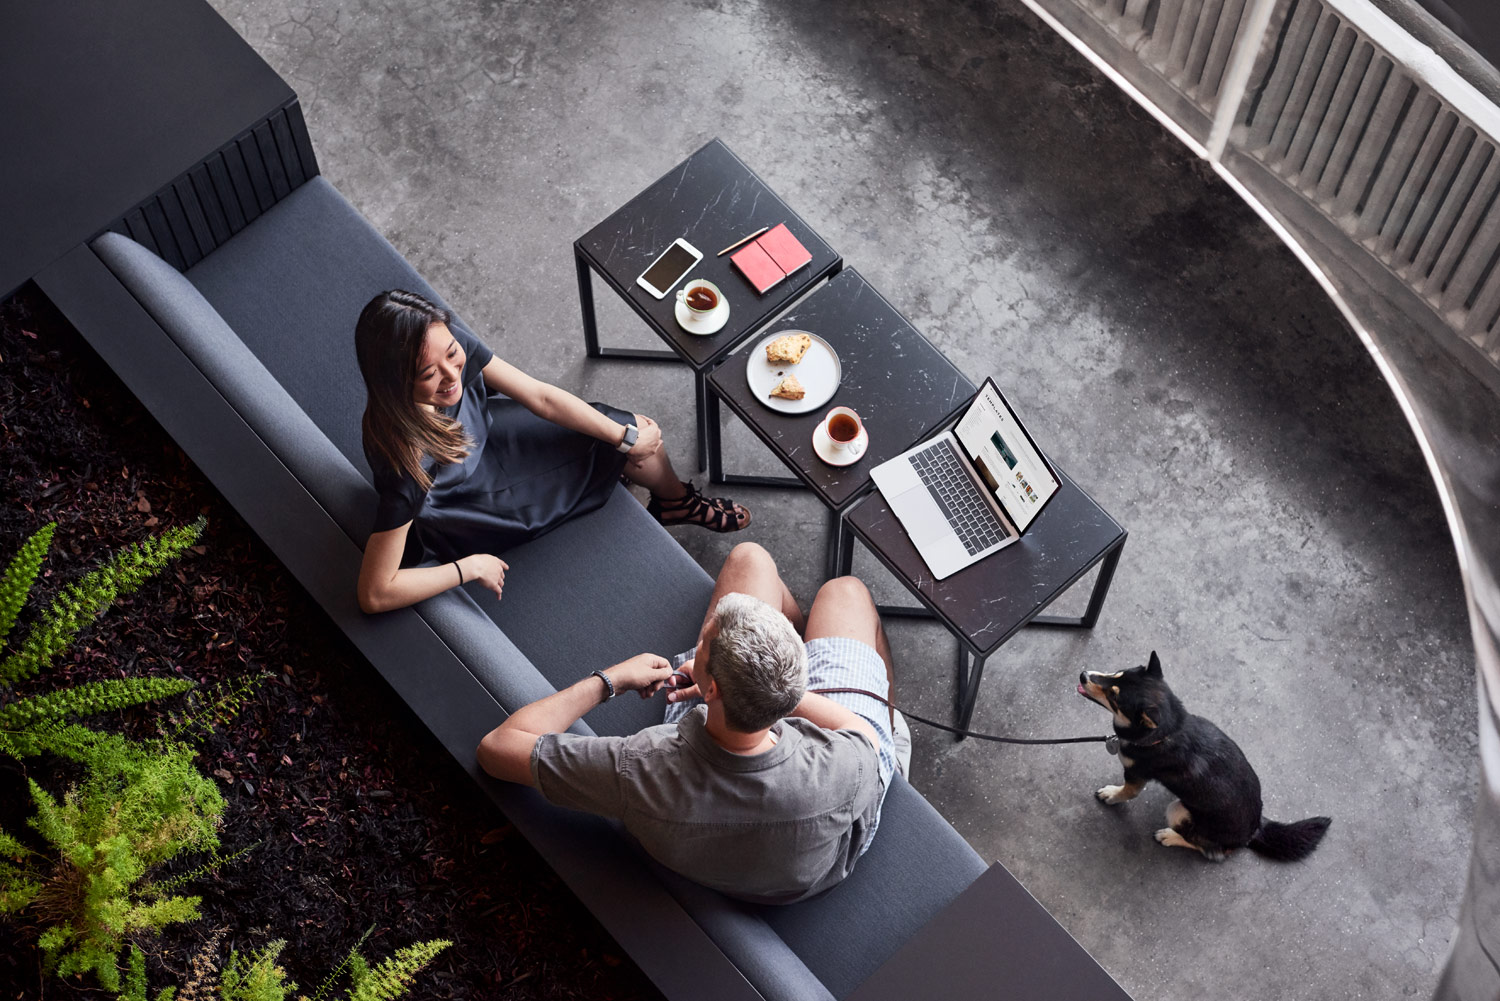 office scene, two people working on sofas together